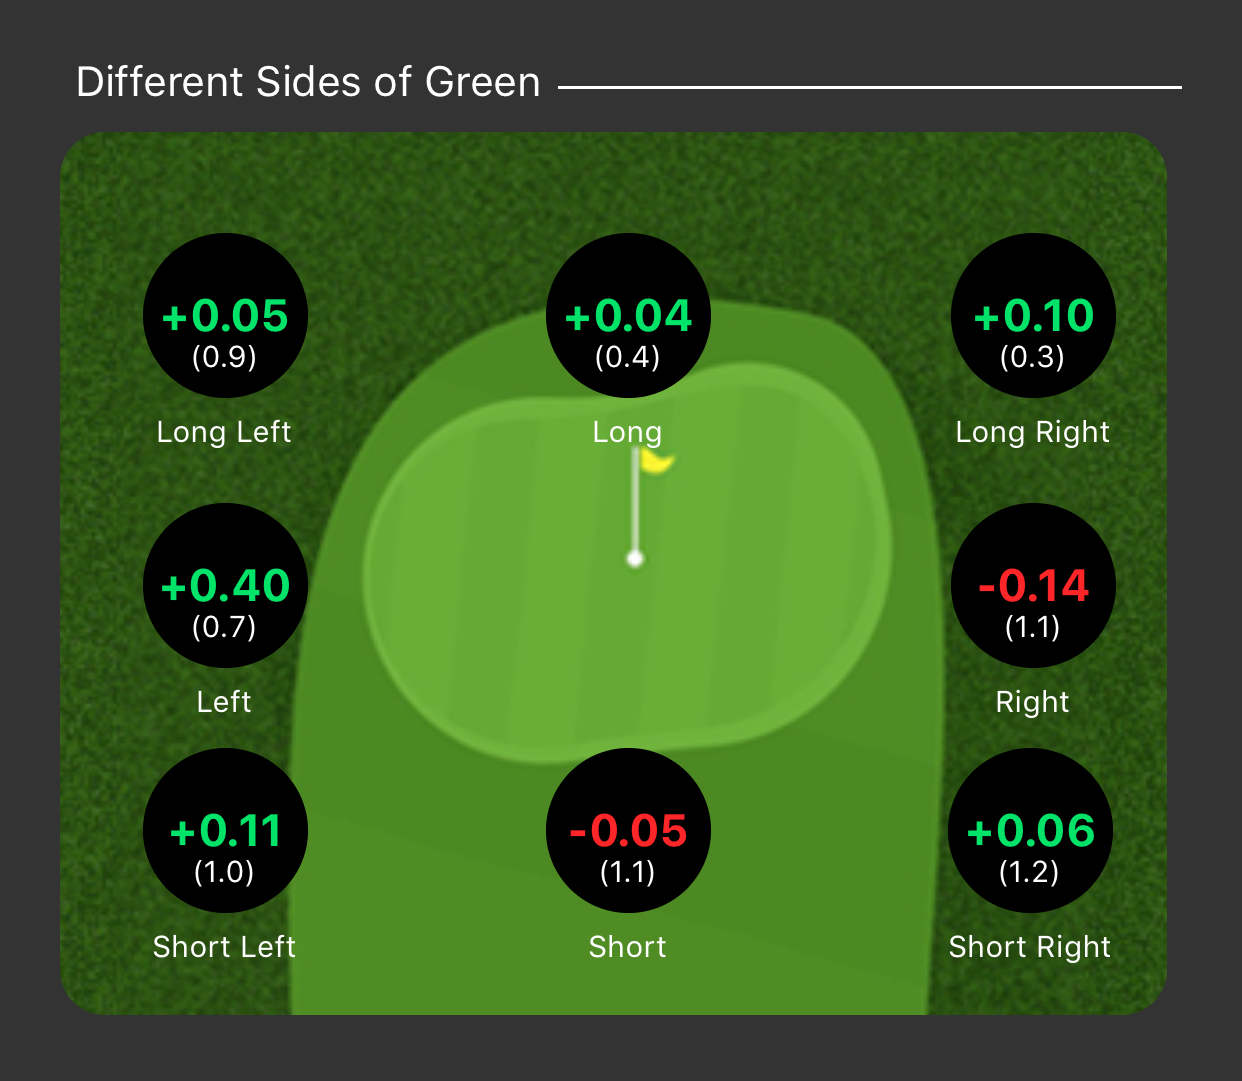 Different sides of green - Short Game